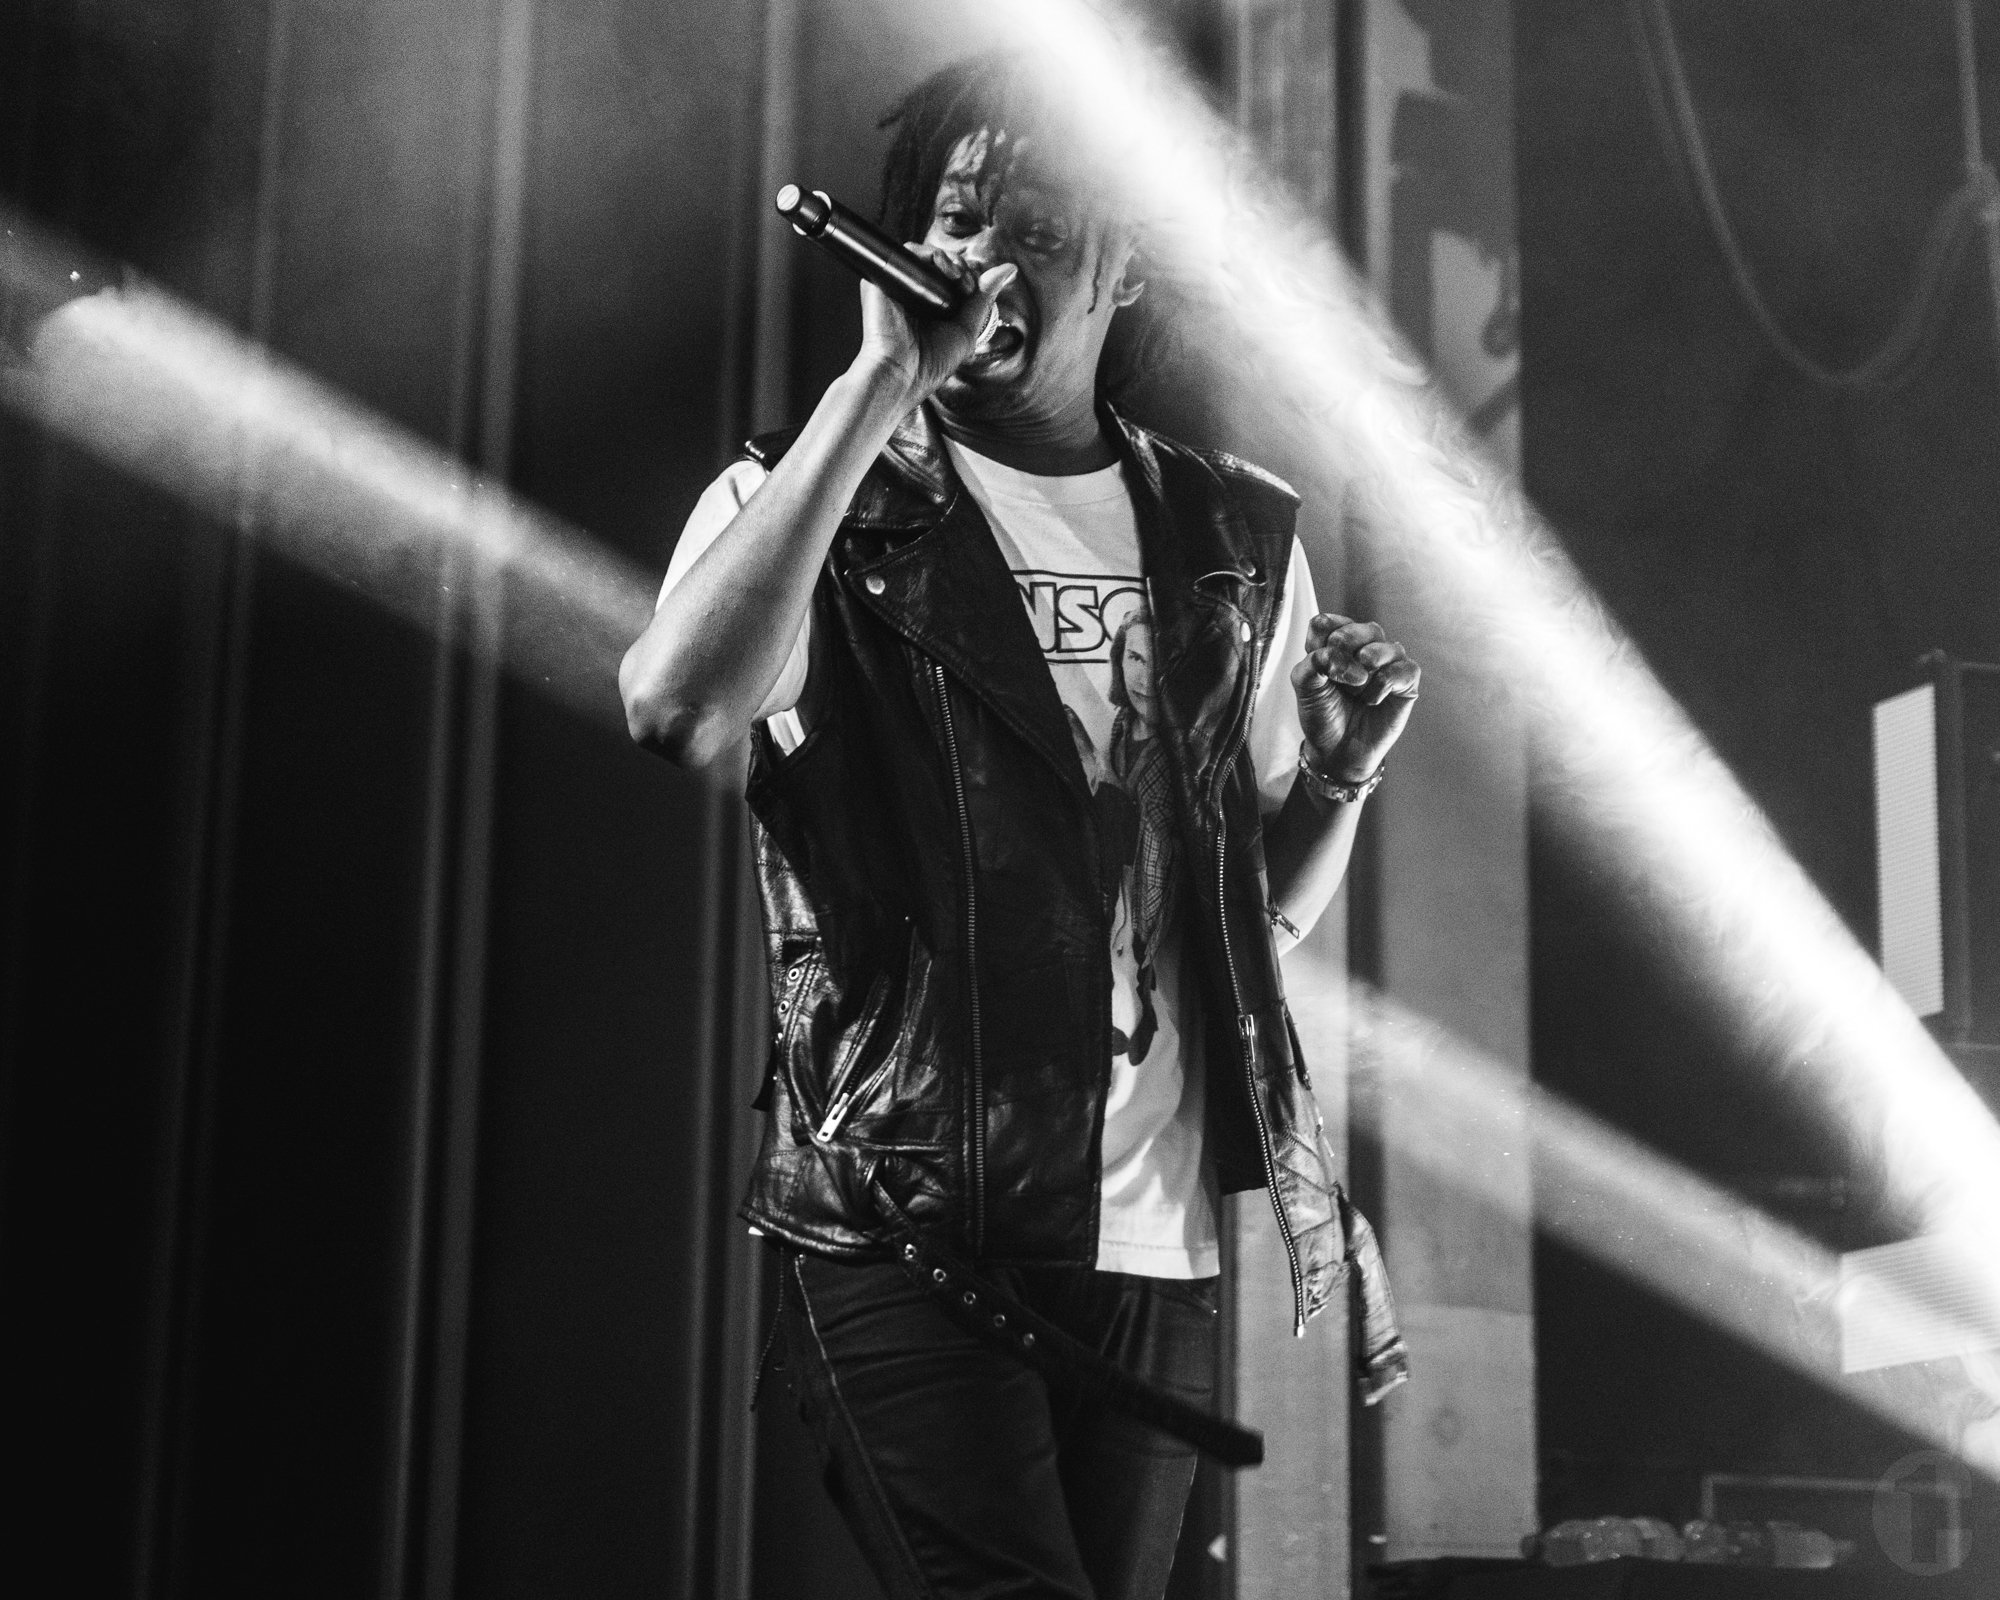 Danny Brown @ The Vogue. 2016